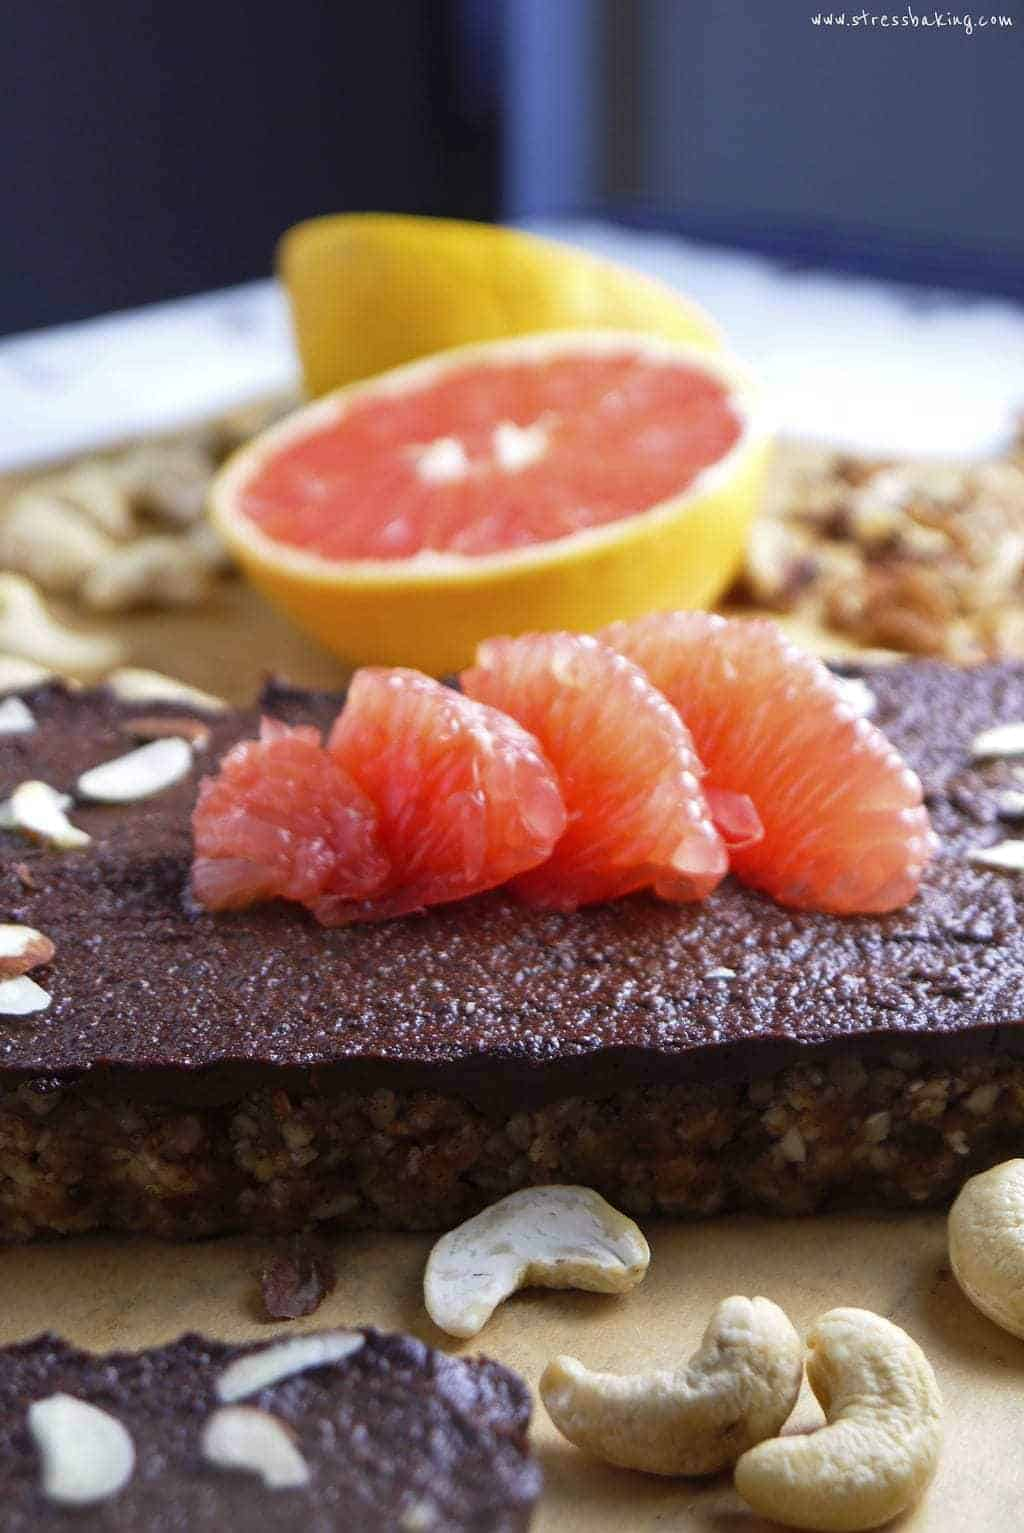 No-Bake Grapefruit Tart with Nut Crust